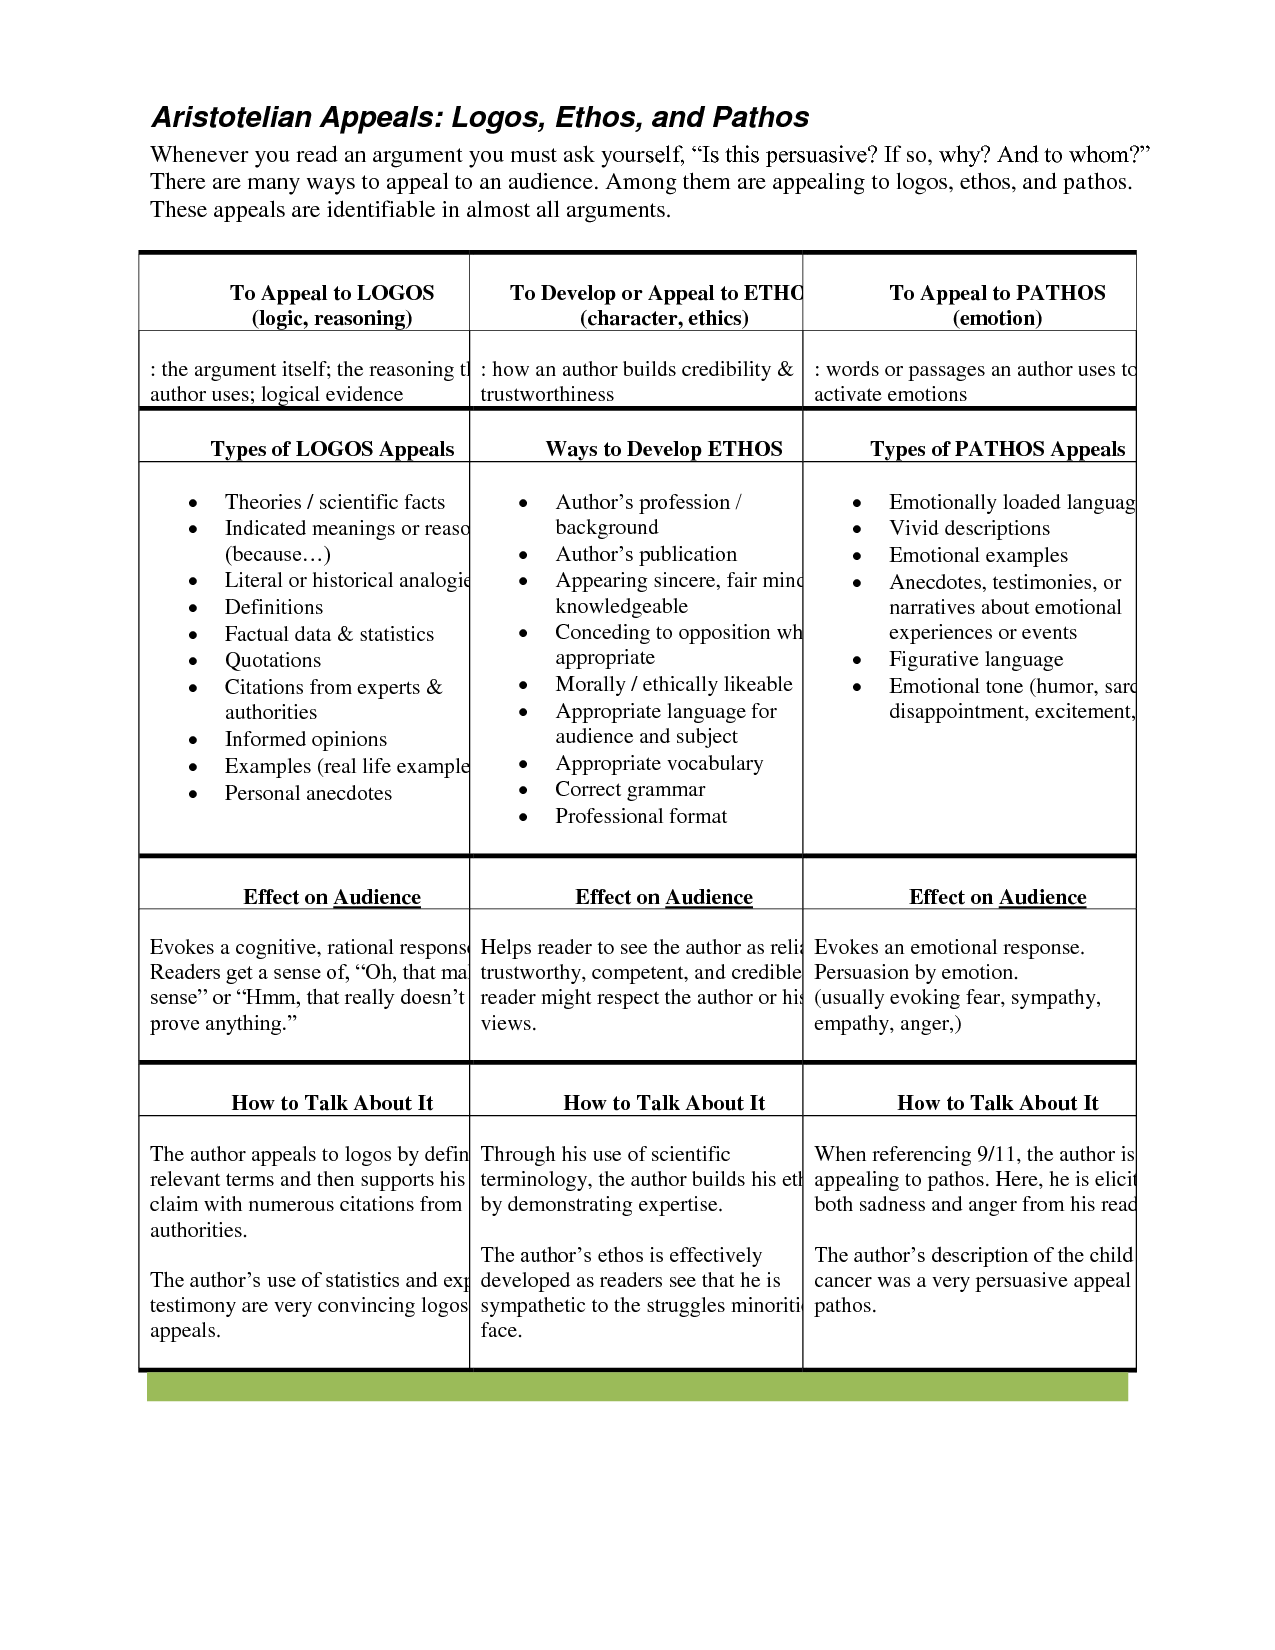 Worksheets Ethos Logos Pathos Worksheet ethos pathos logos worksheet lesson lesson